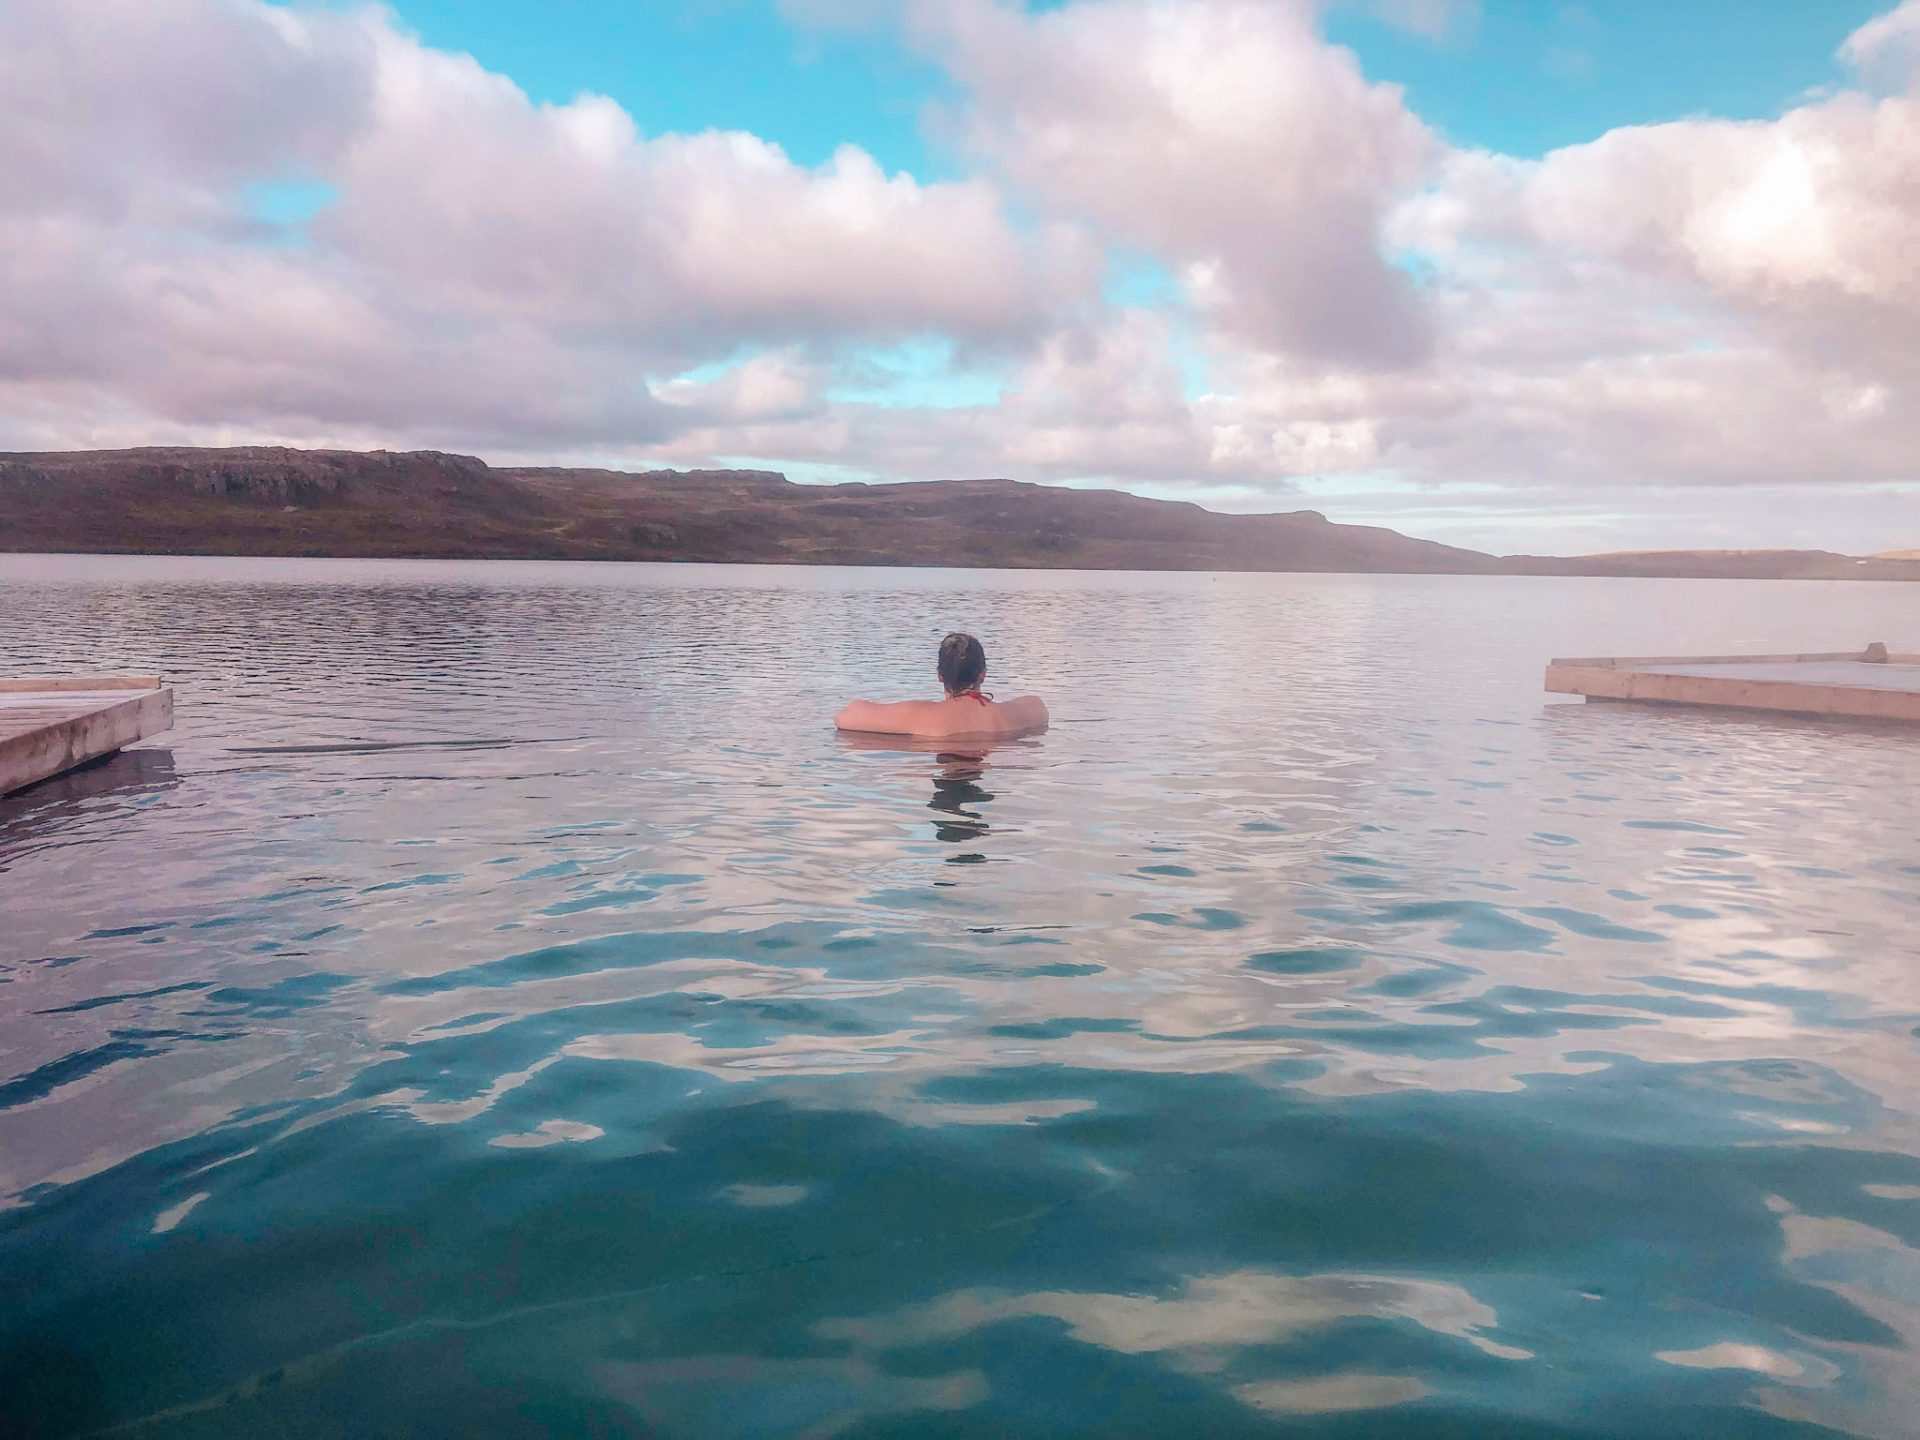 Woman (she/her) back facing the camera relaxing looking out from the geothermal pool Vok baths in Iceland out over the Lake. A blue sky overhead with huge white fluffy clouds.